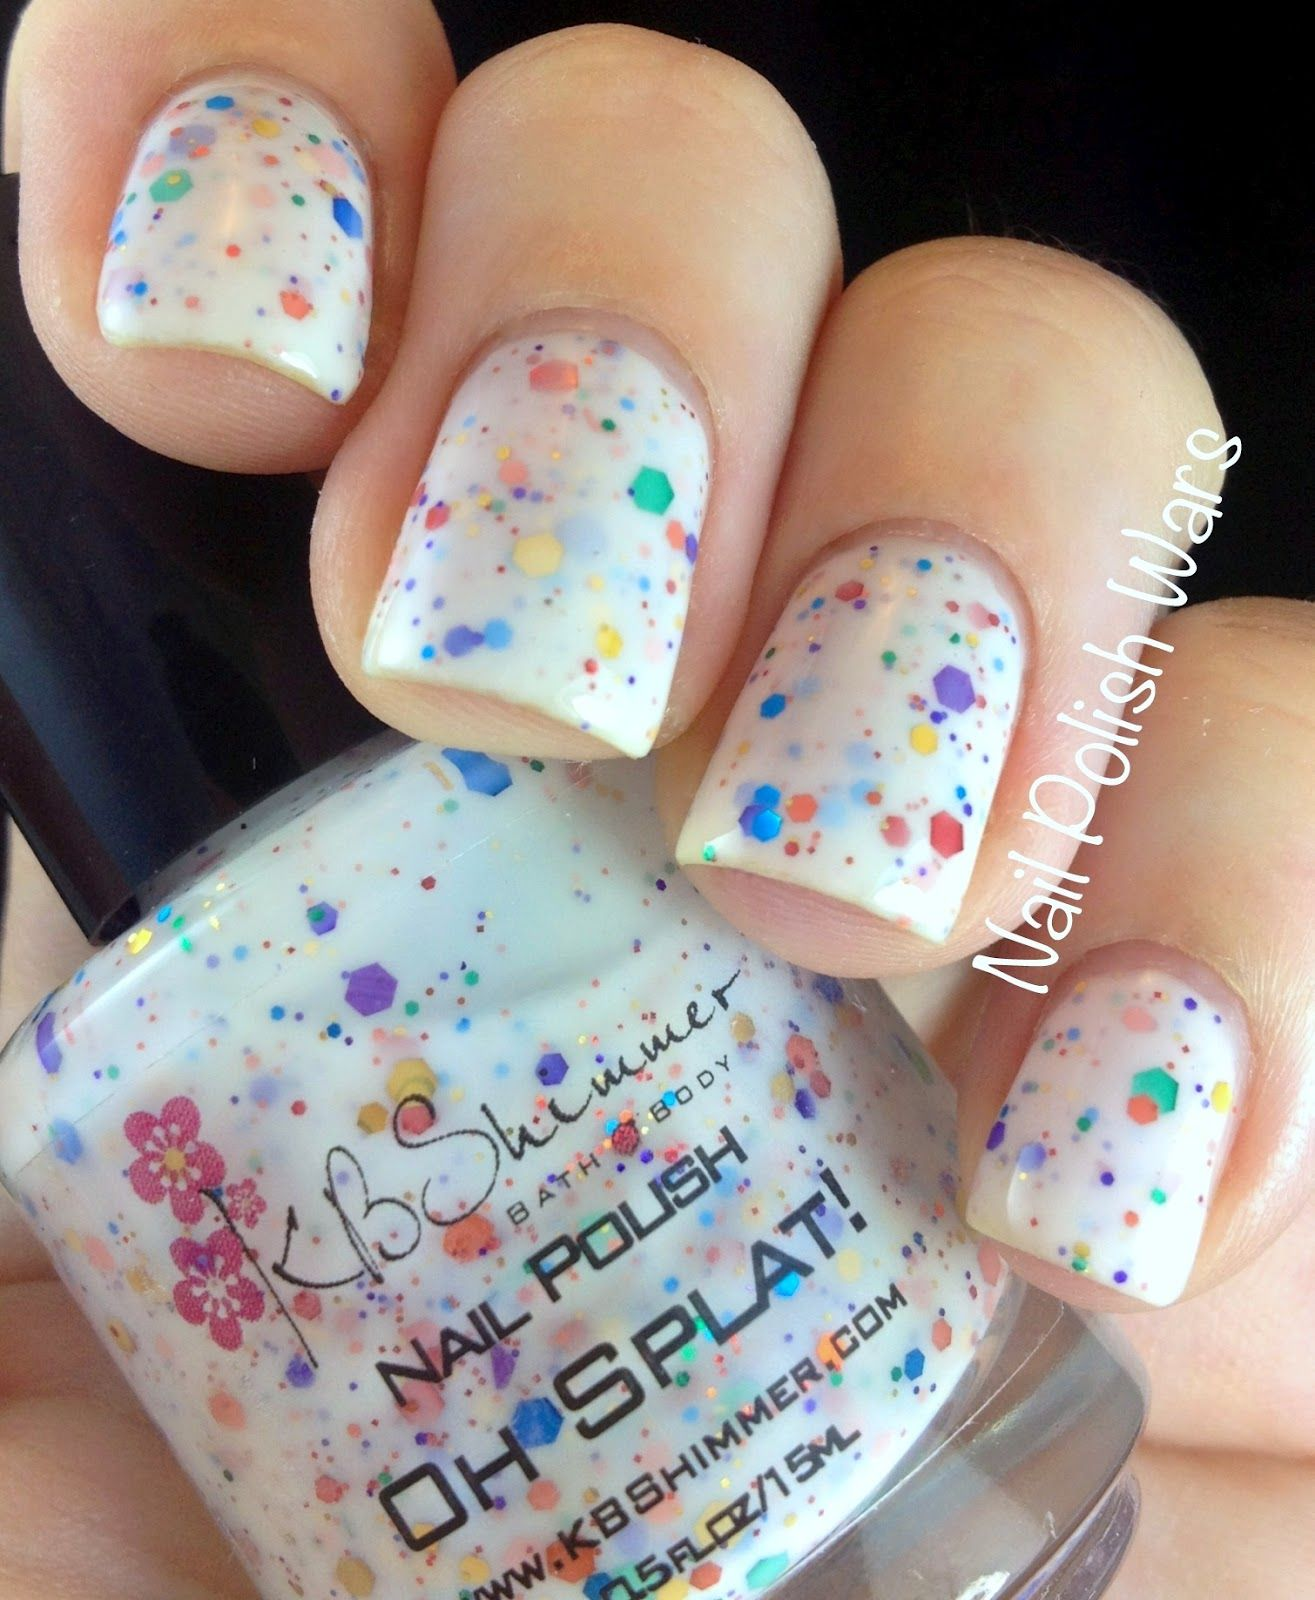 KBShimmer Oh Splat | Lacquer | Pinterest | Makeup, Splatter nails ...